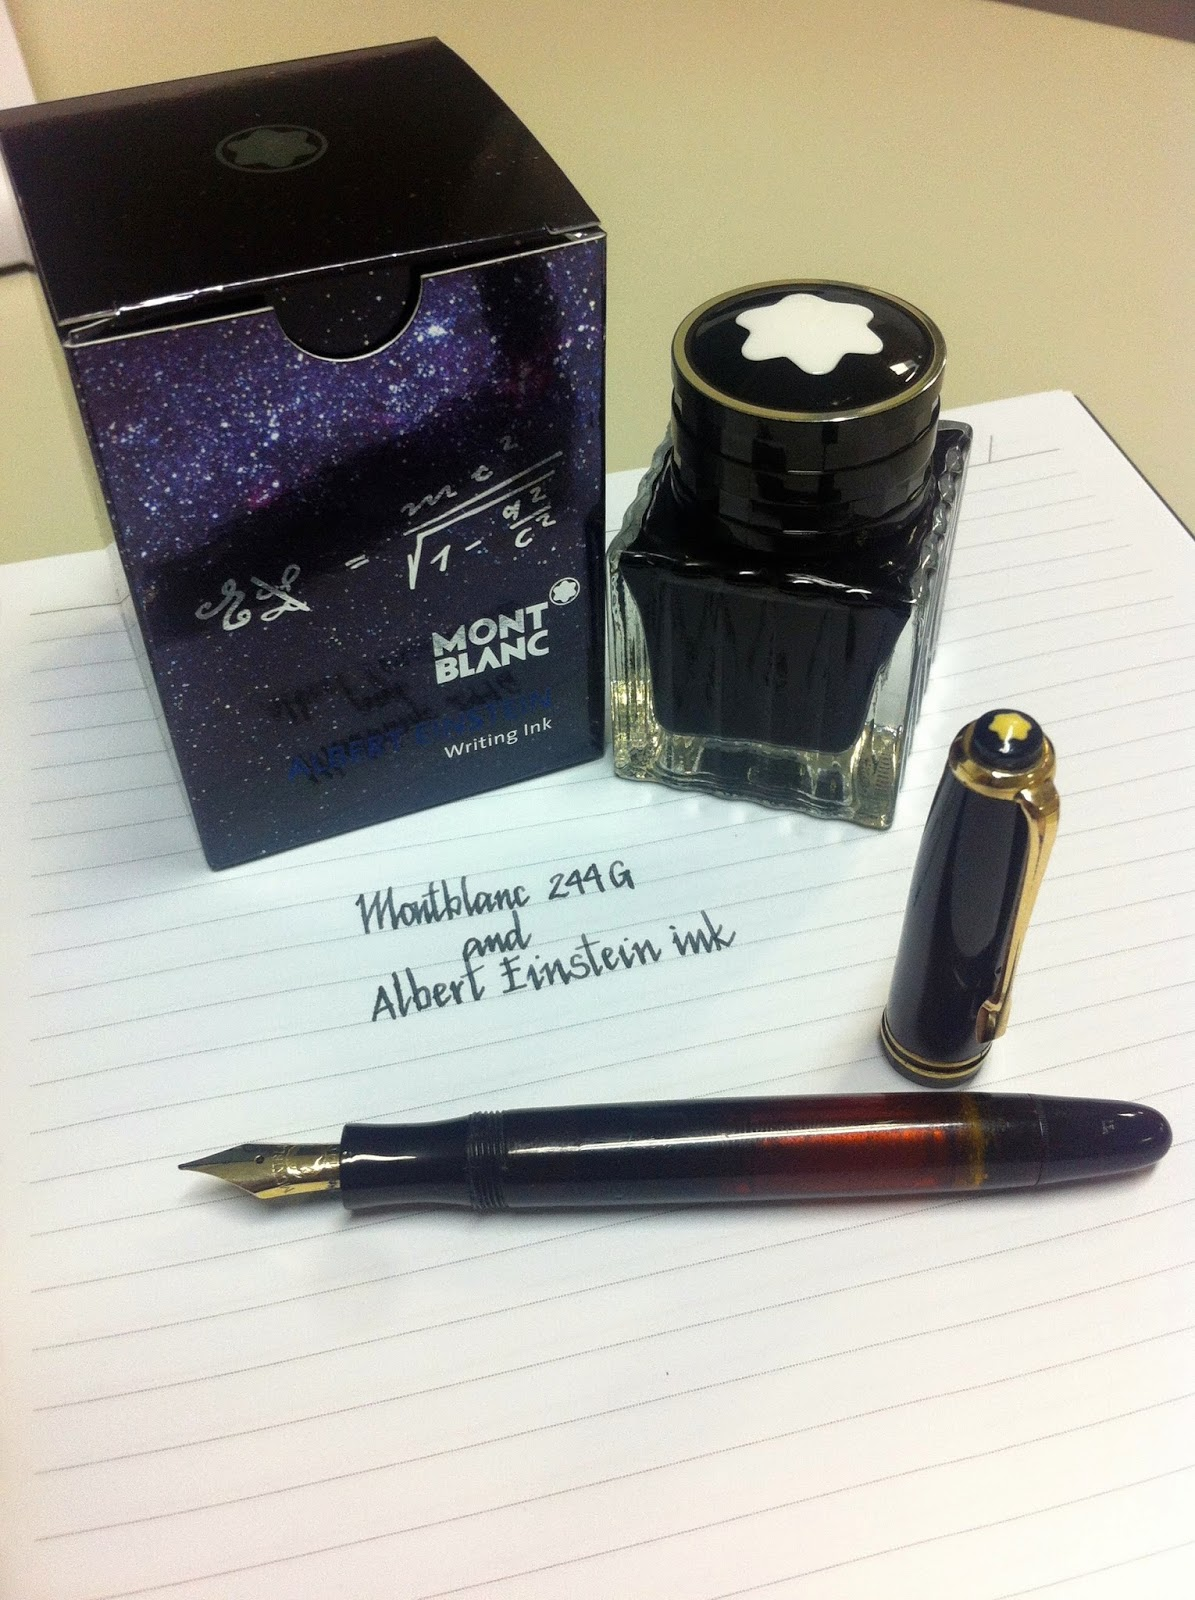 Montblanc 244G and Montblanc Albert Einstein ink